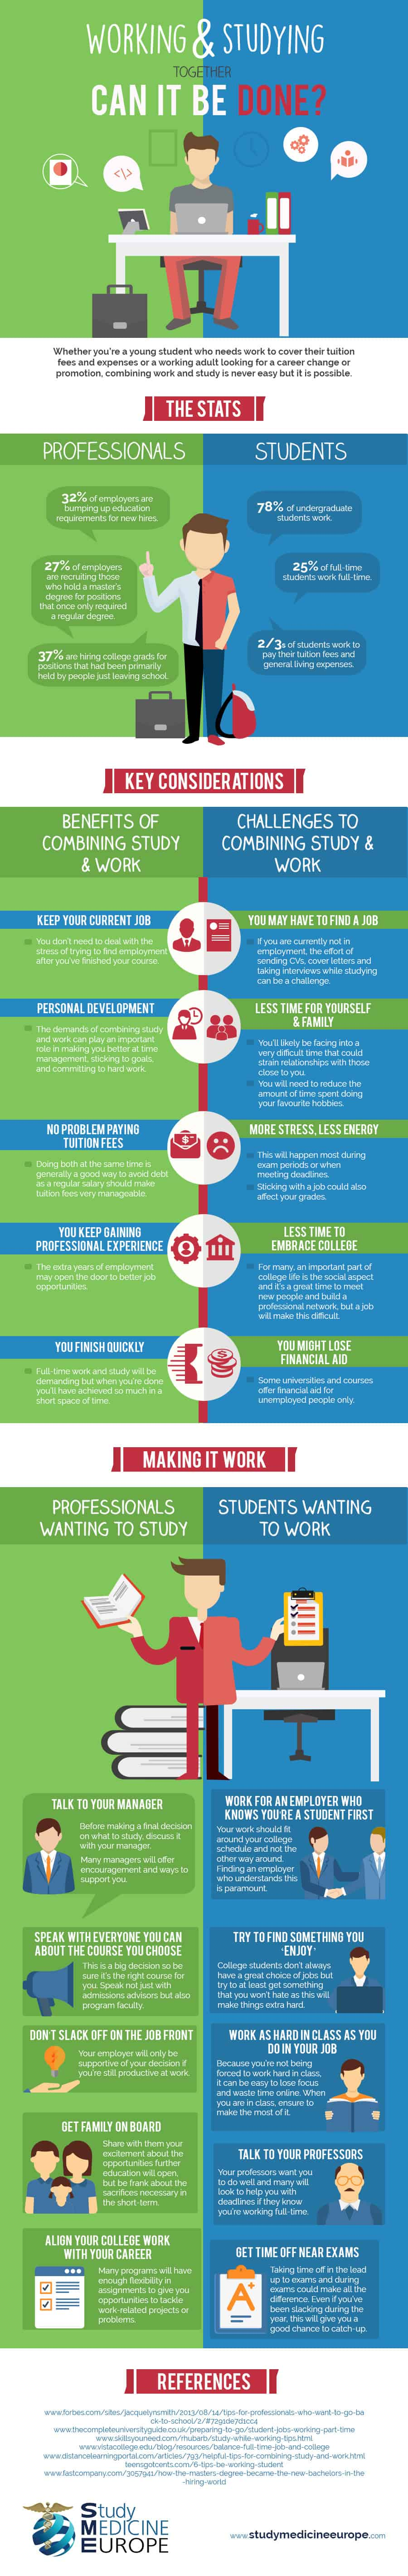 working-&-studying-together-can-it-be-done-infographic